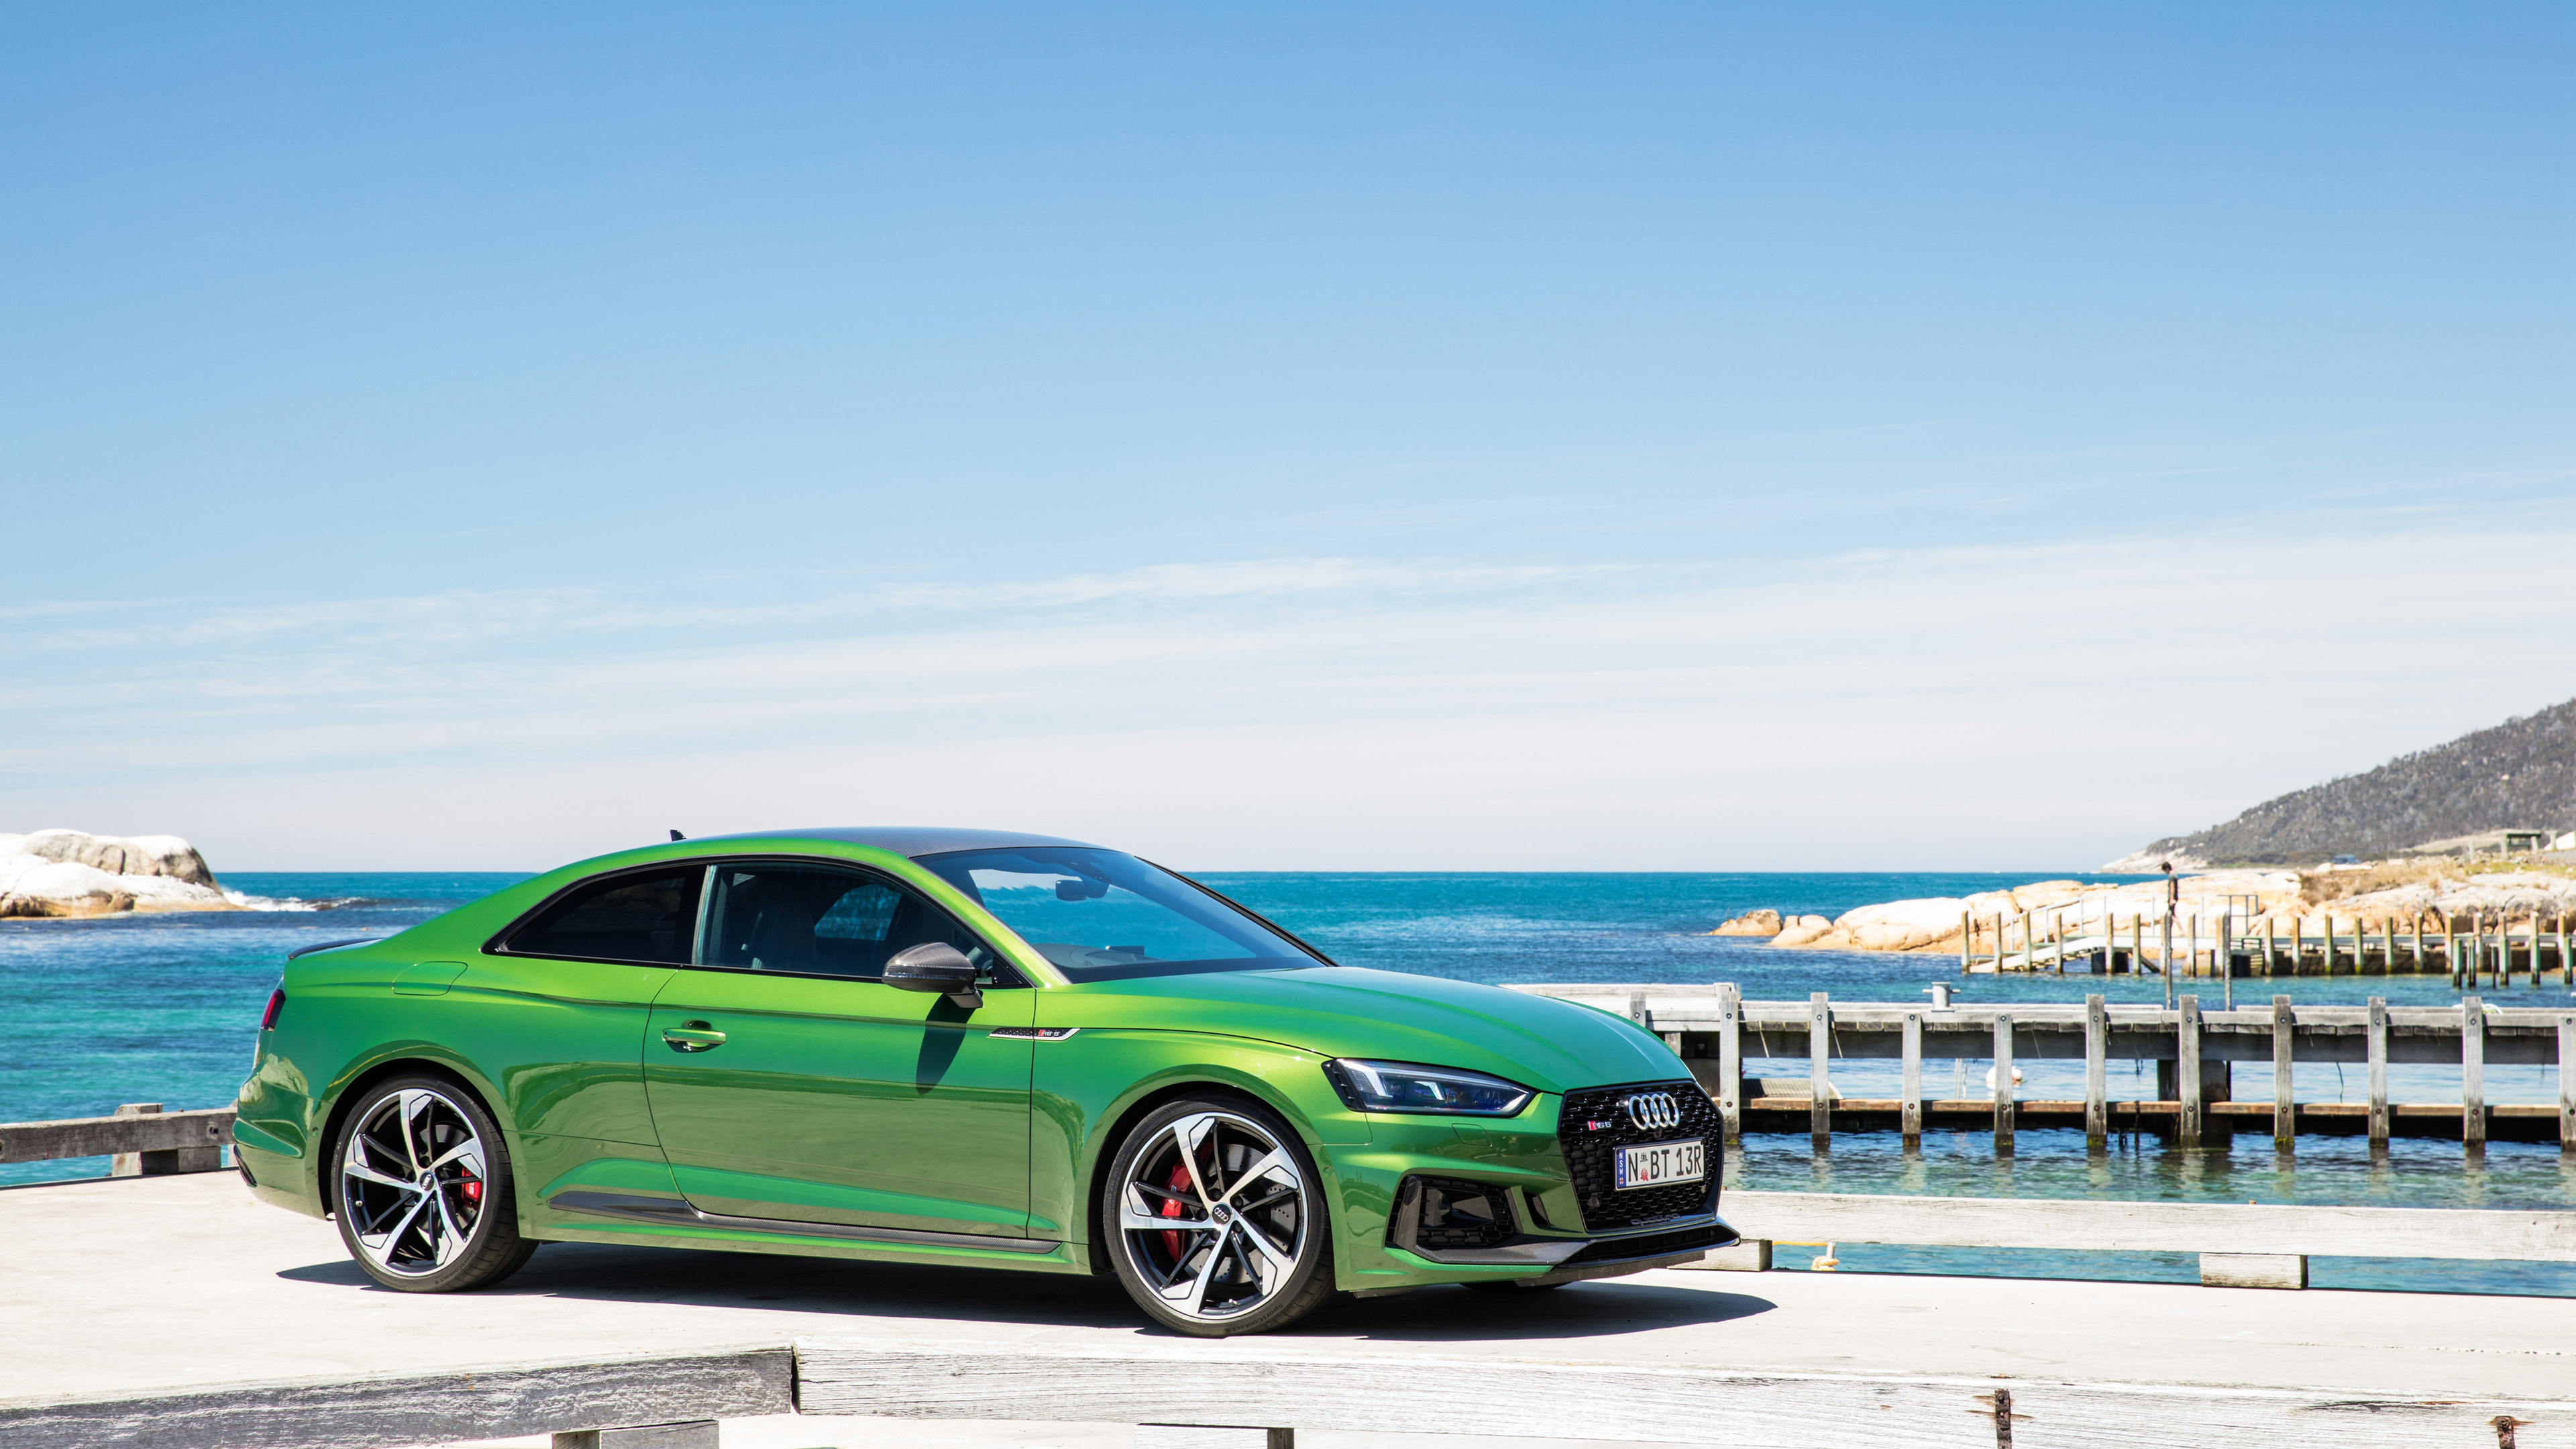 audi rs5 coupe 1539108749 - Audi Rs5 Coupe - hd-wallpapers, cars wallpapers, audi wallpapers, audi rs5 wallpapers, 4k-wallpapers